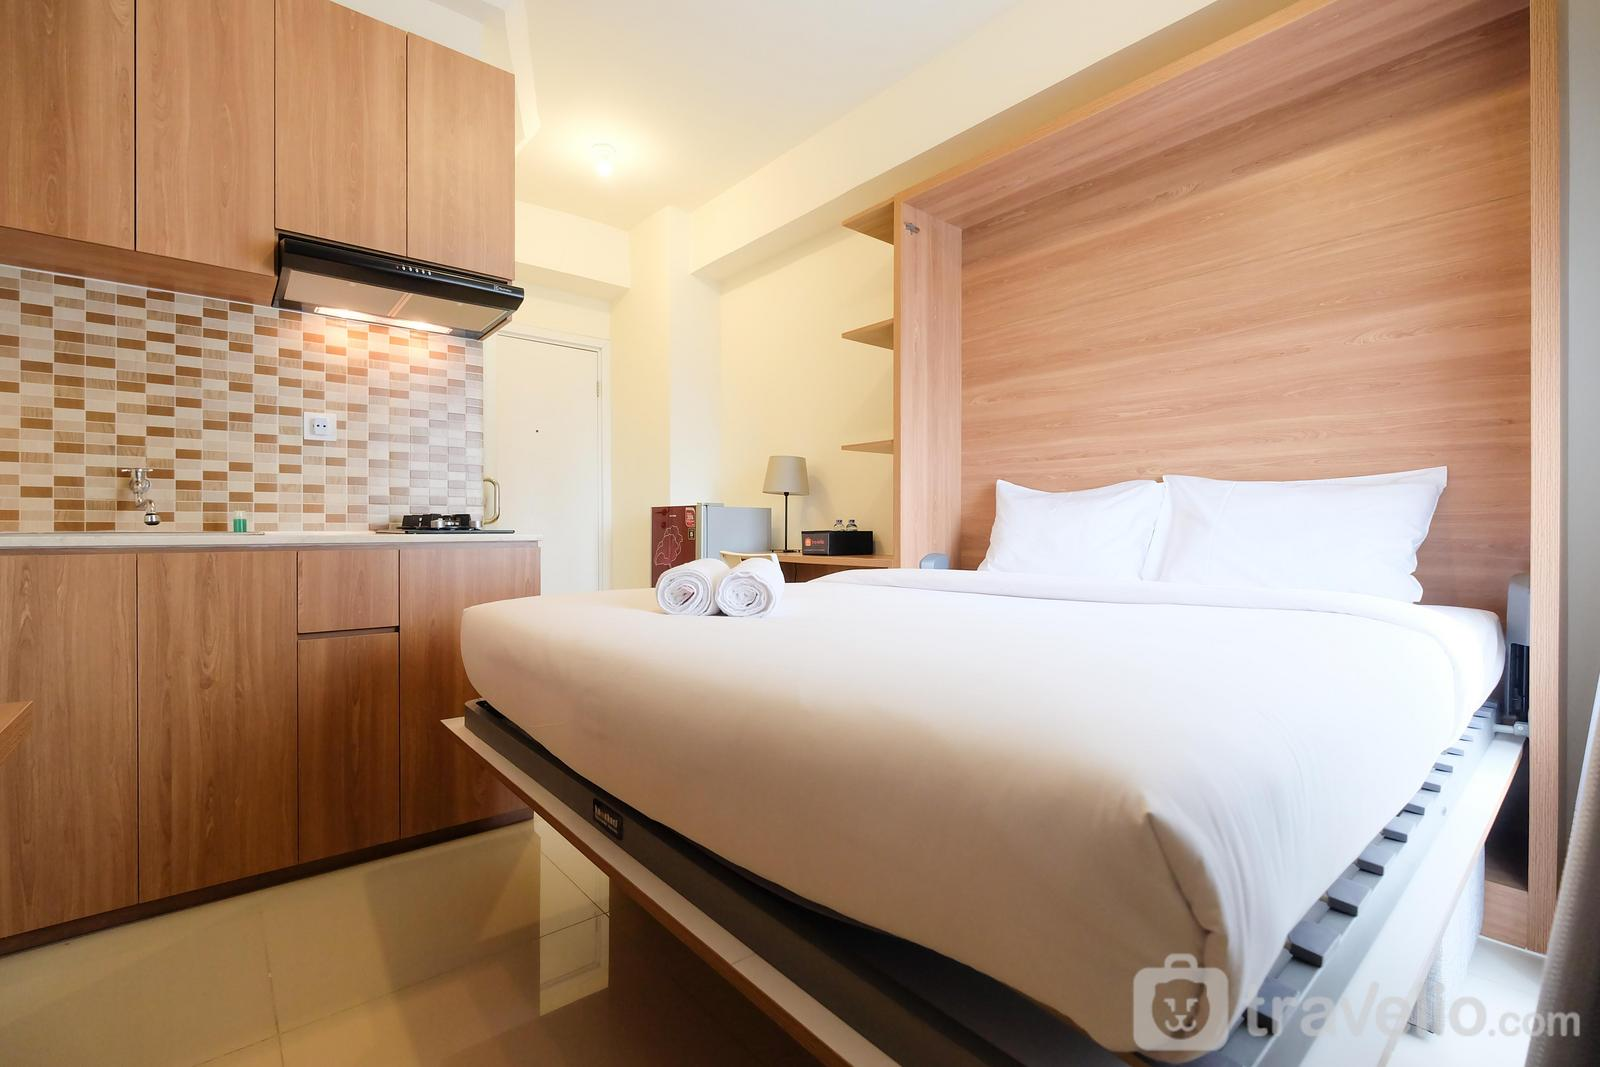 Green Pramuka Cempaka Putih - Modern Studio at Green Pramuka City Apartment near to Shopping Center By Travelio